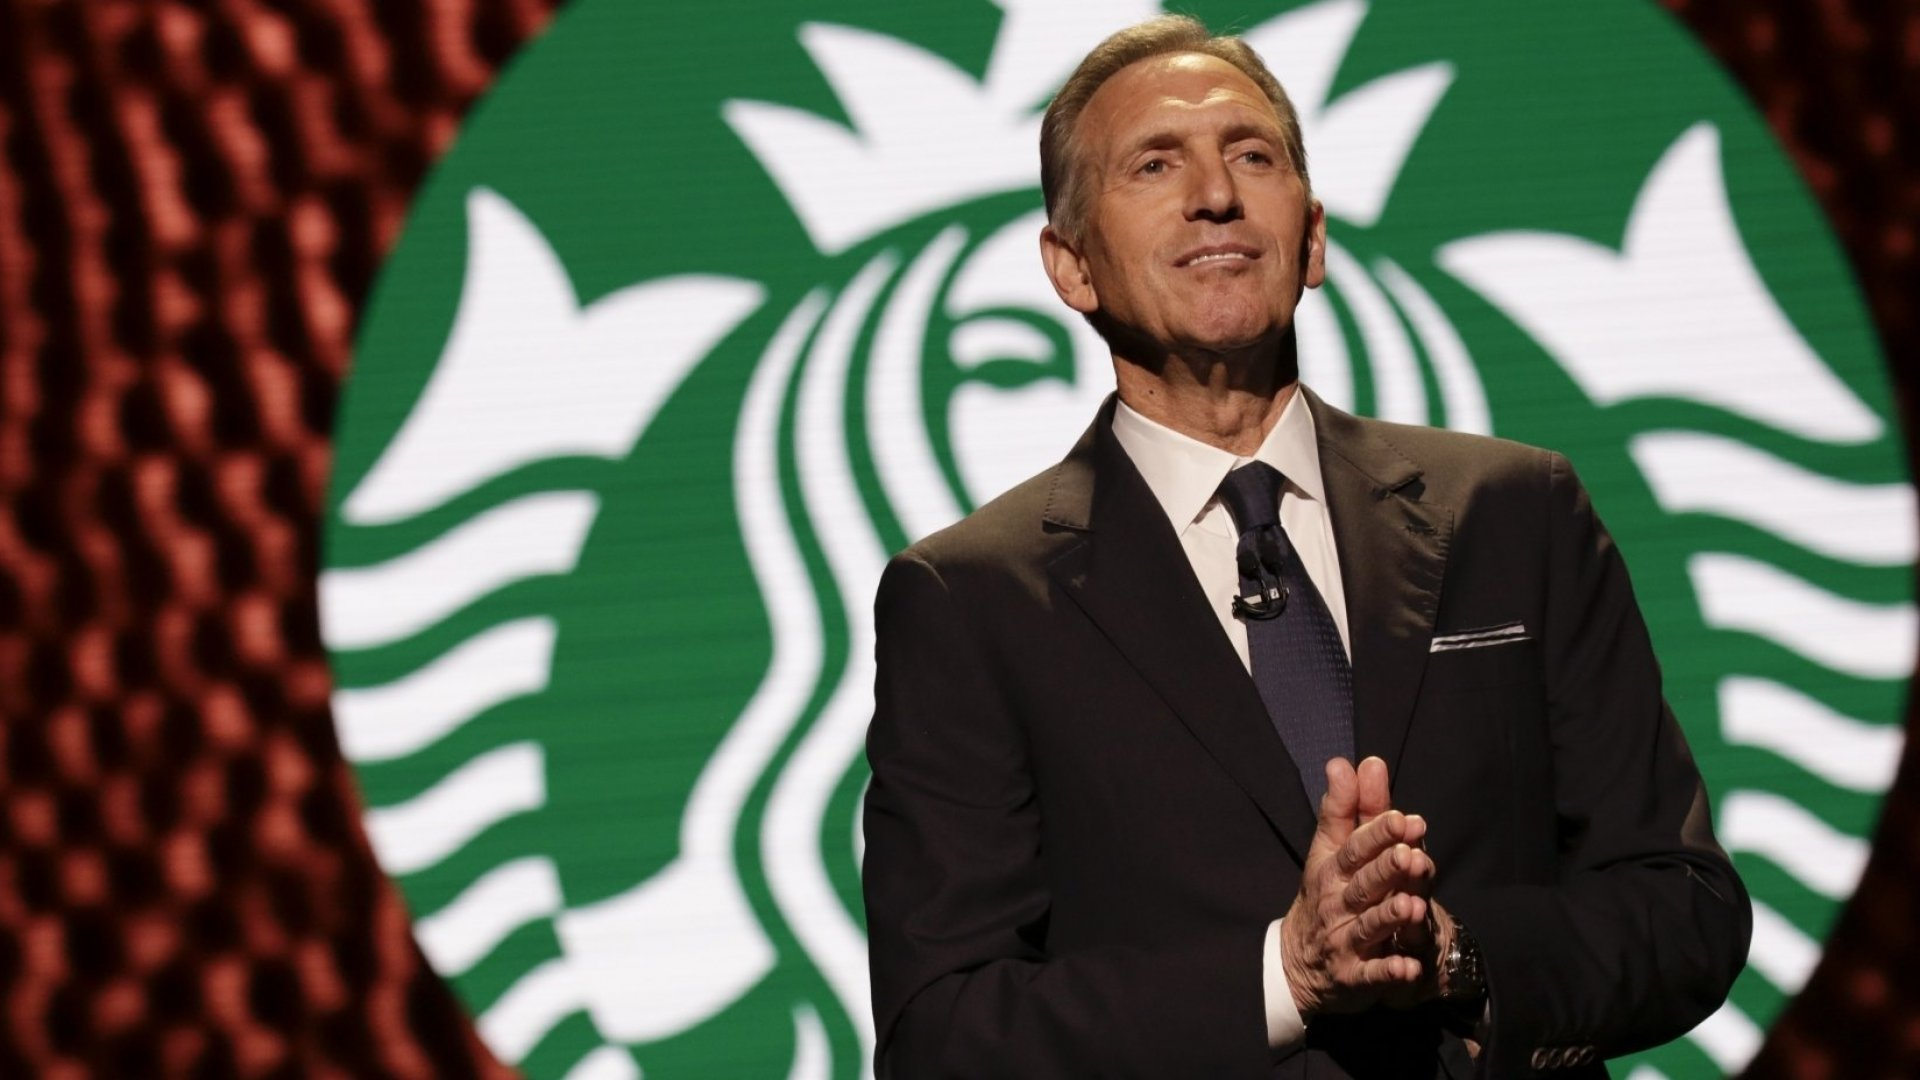 From Brooklyn to Billionaire: The Story of How Howard Schultz Transformed Starbucks Into an $84 Billion Business